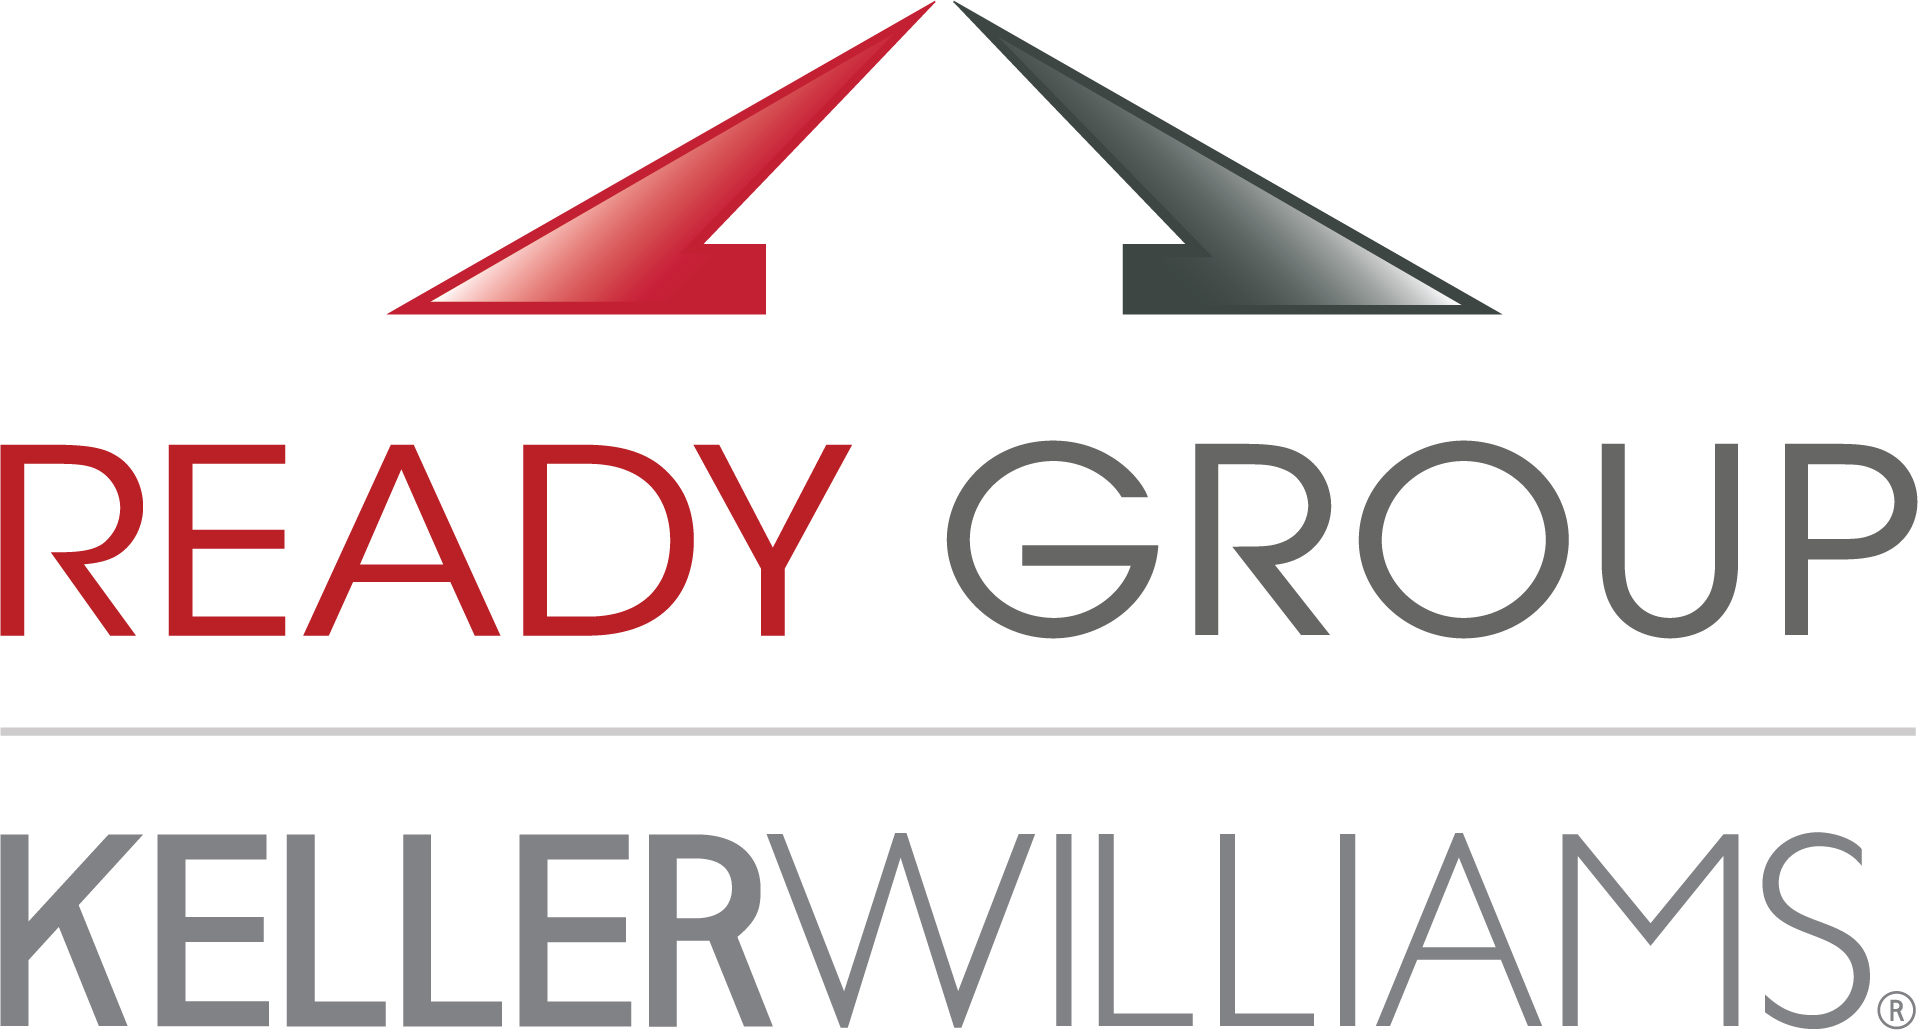 Ready Group of Keller Williams logo